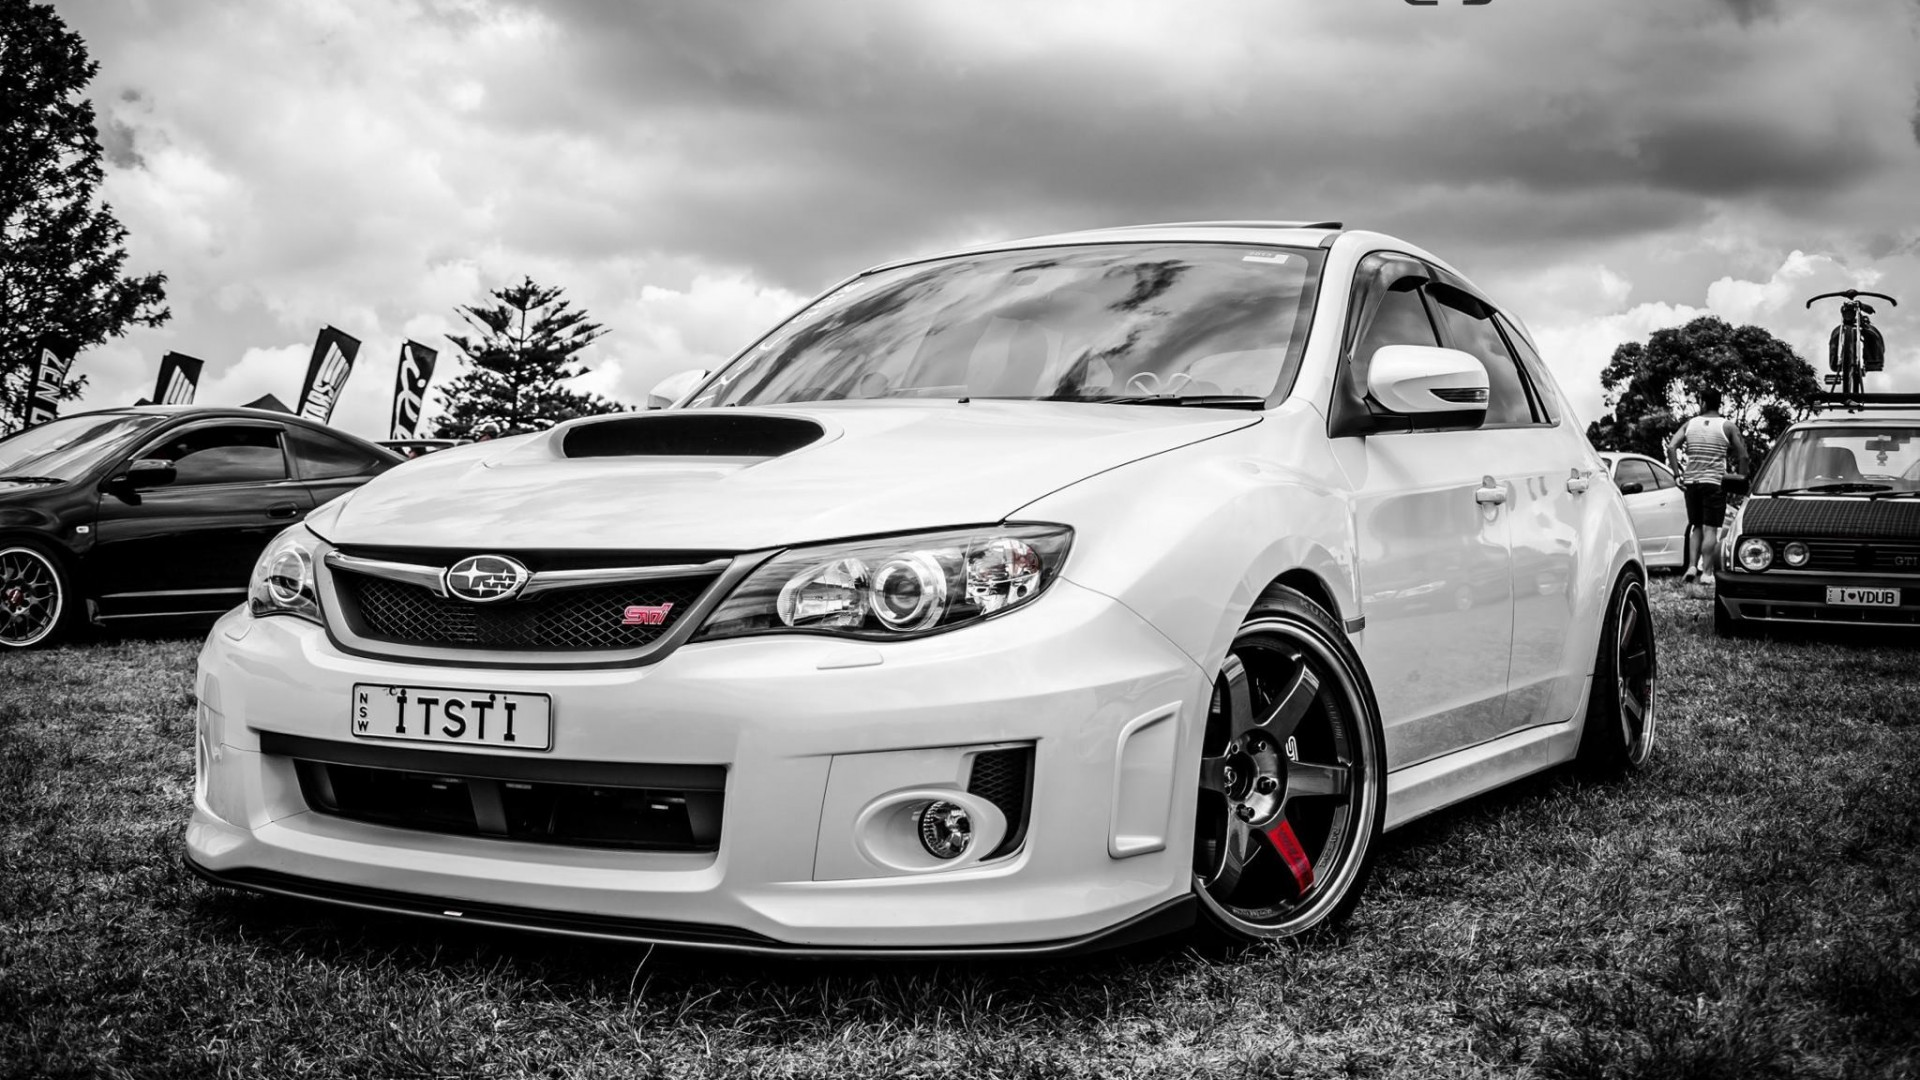 subaru impreza sti car hd wallpaper 1080p. Black Bedroom Furniture Sets. Home Design Ideas